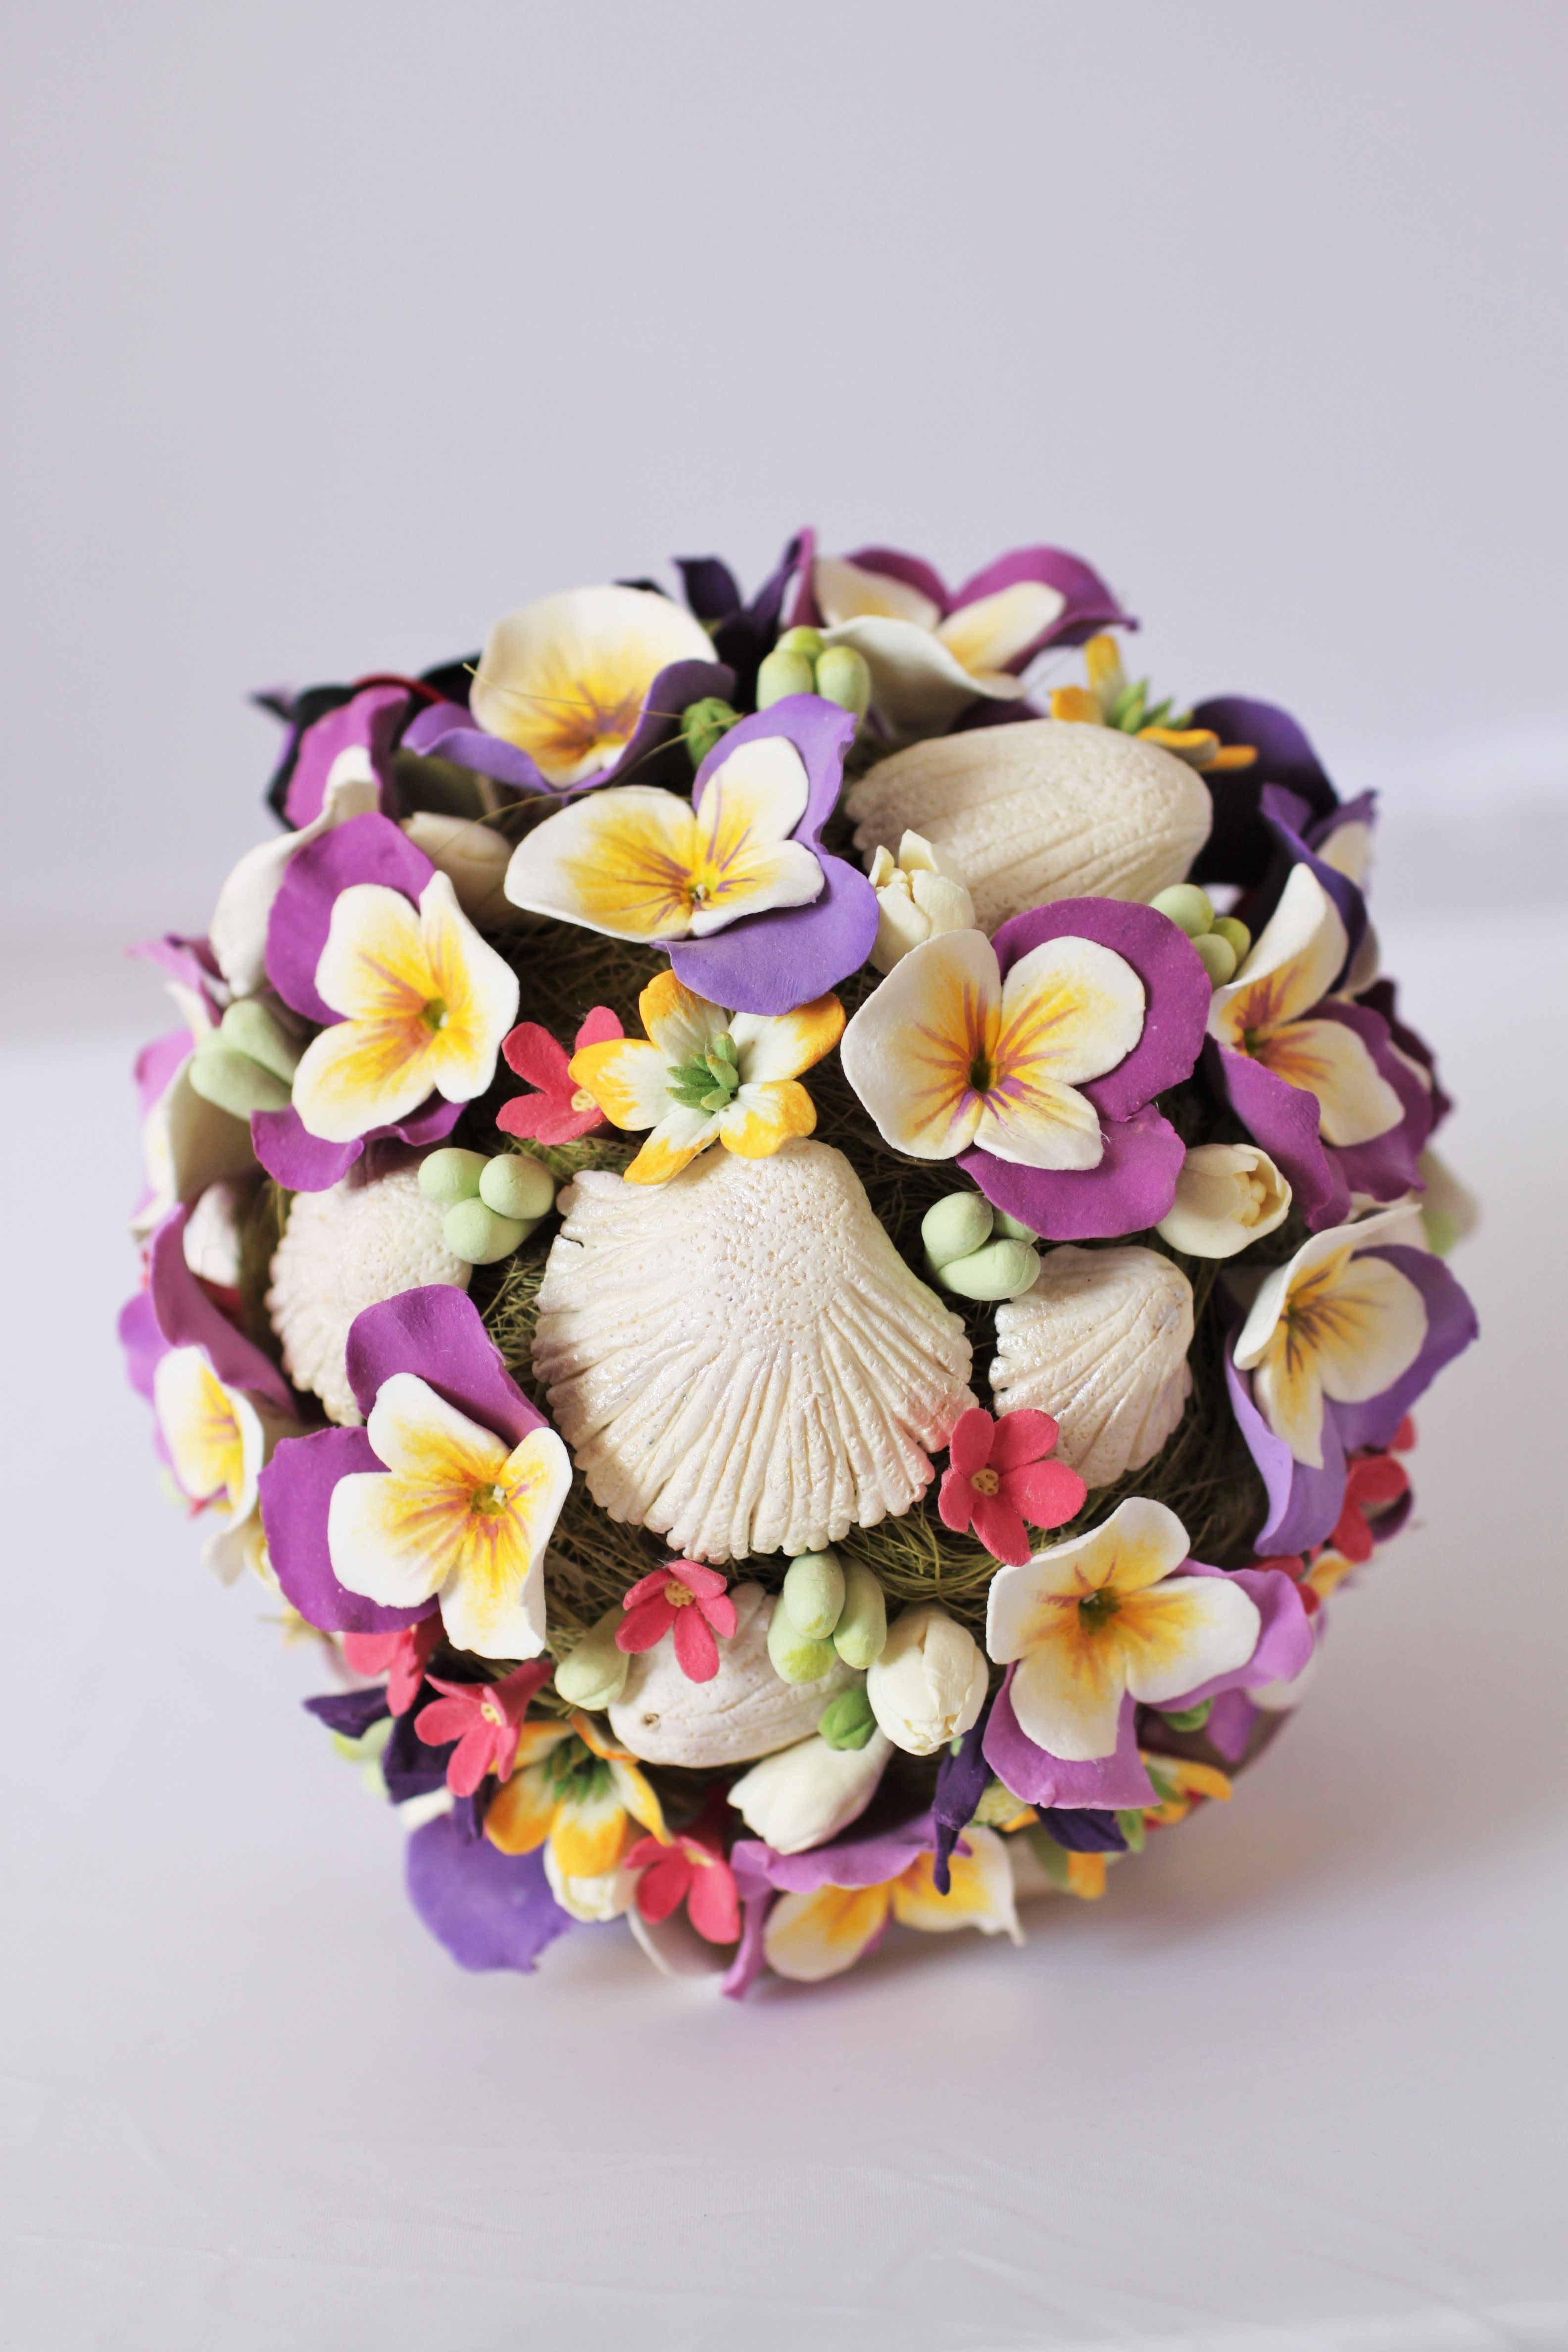 Pomander ball made with combination of deco clay flowers and shells pomander ball made with combination of deco clay flowers and shells izmirmasajfo